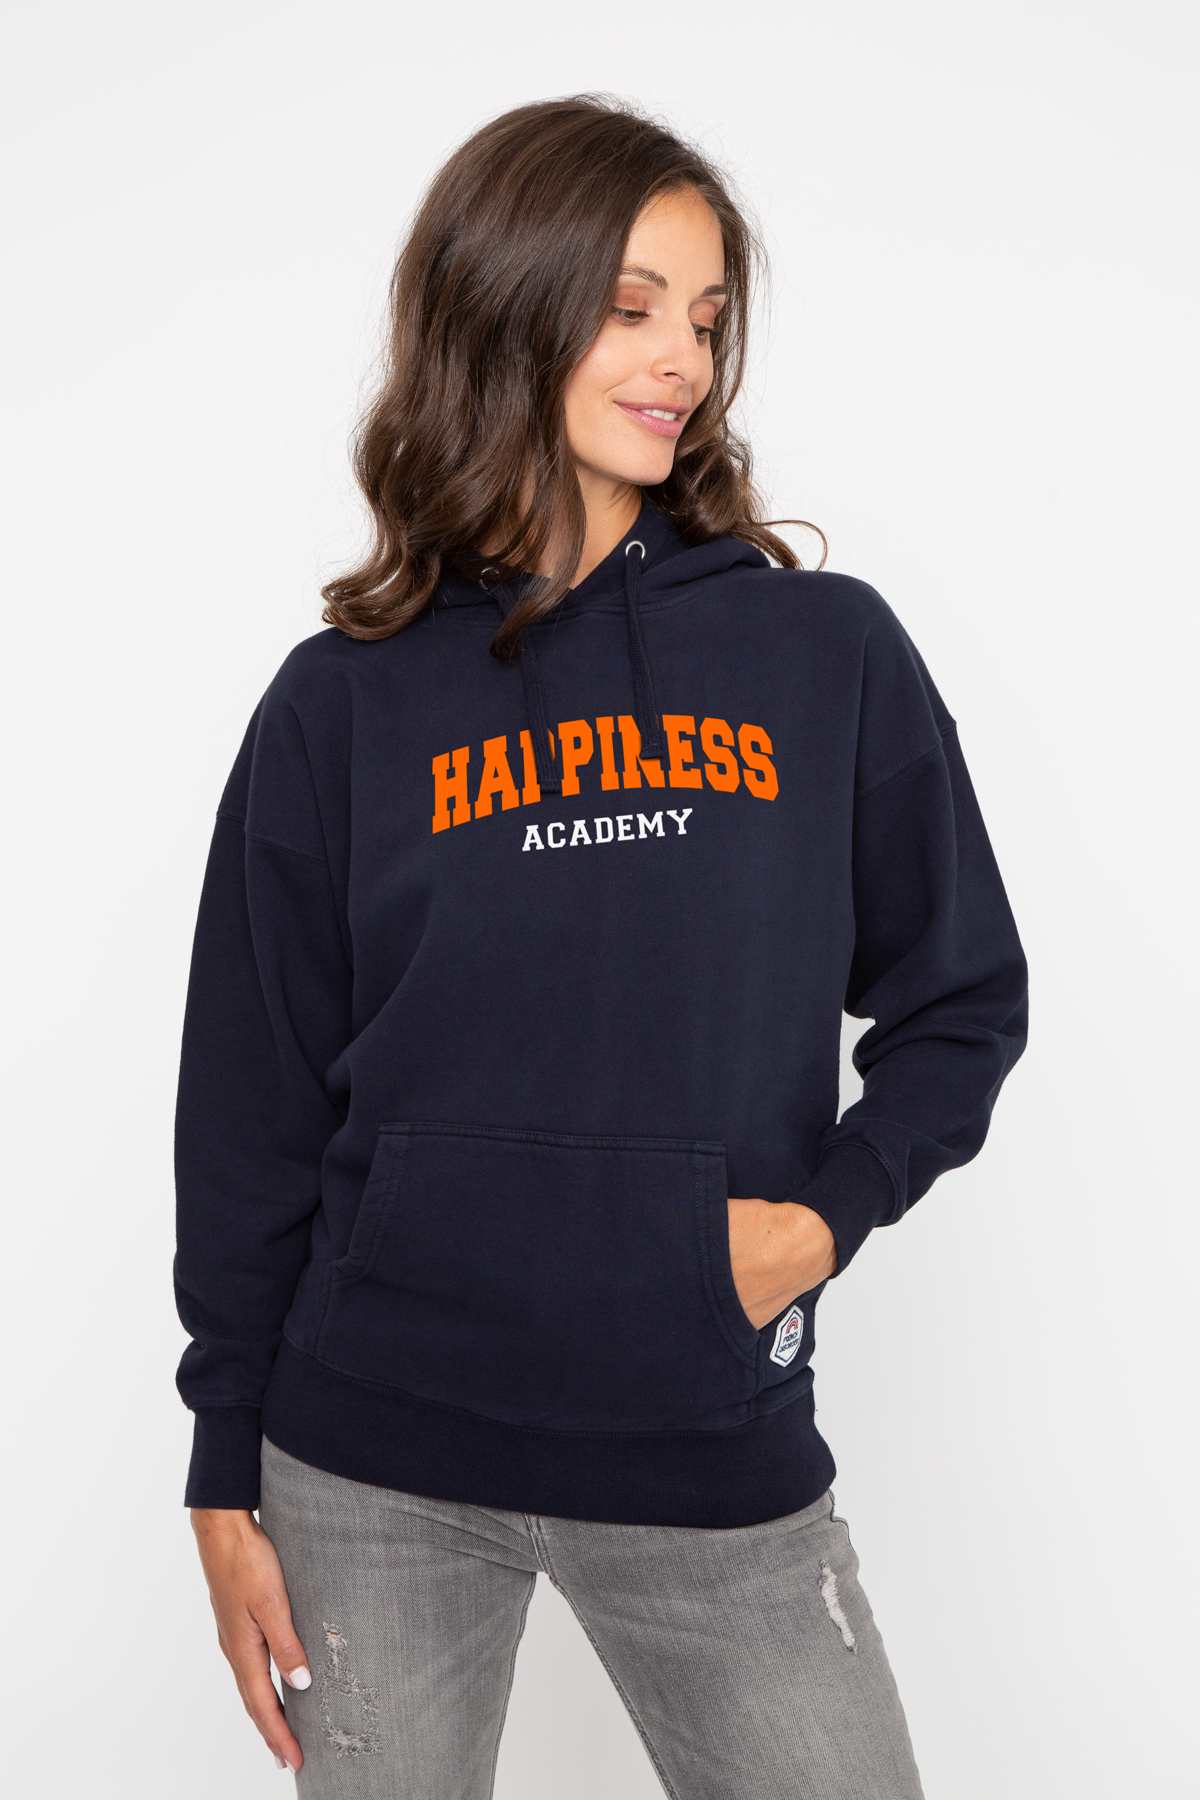 Hoodie HAPPINESS ACADEMY